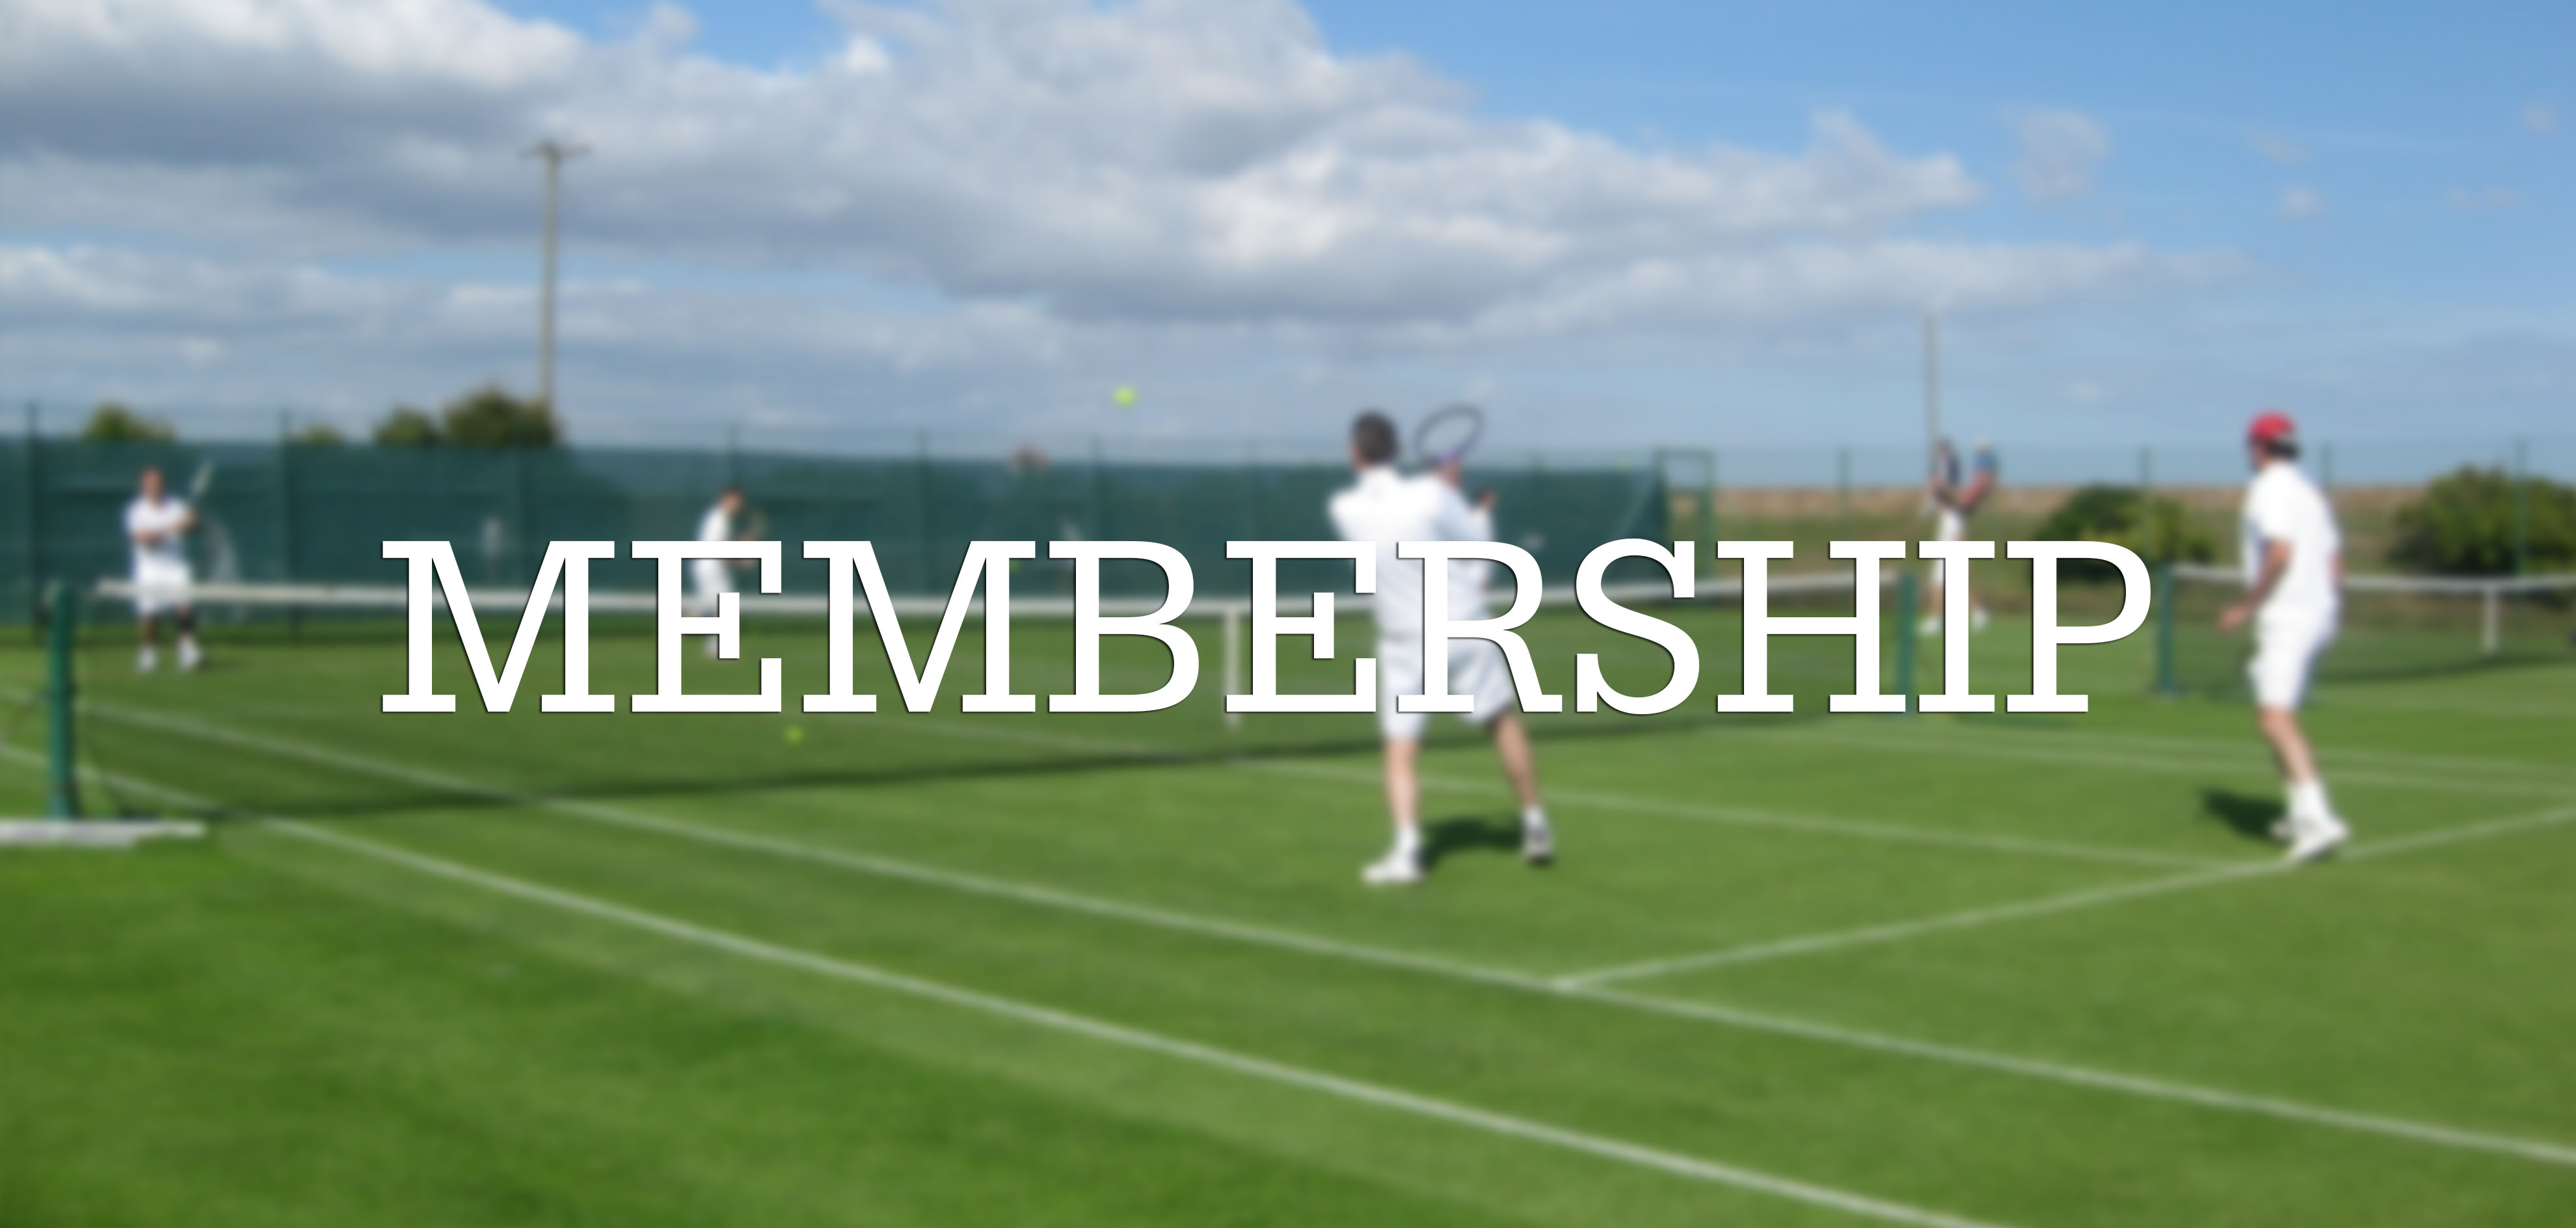 https://www.ryetennisandsquashclub.org.uk/wp-content/uploads/2019/04/membership.jpg